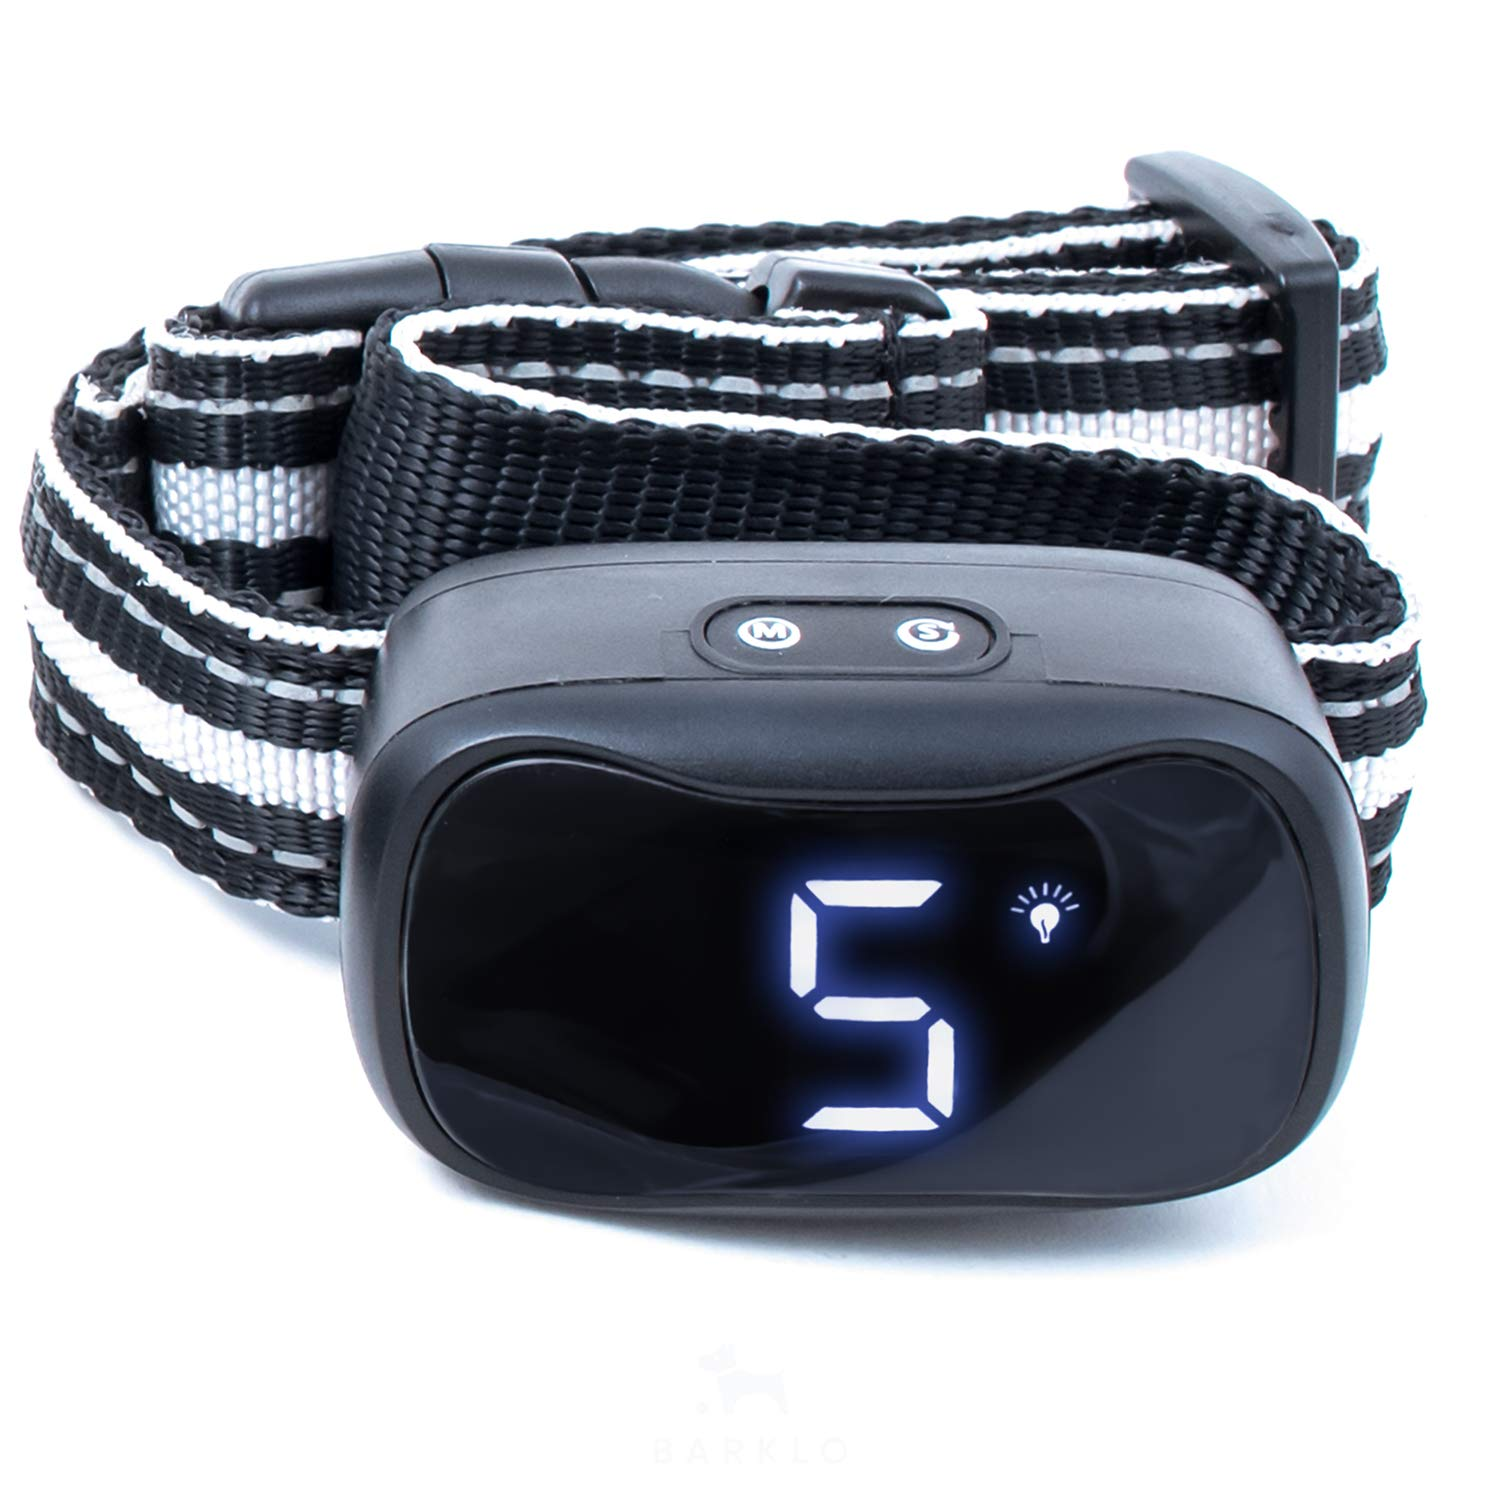 Black Barklo Anti Bark Collar for Medium and Large Dogs Sound, Vibration, Shock Modes for Different Dog Personalities LED-Illuminated No Barking Control Collars for Nighttime Rechargeable & Rainproof